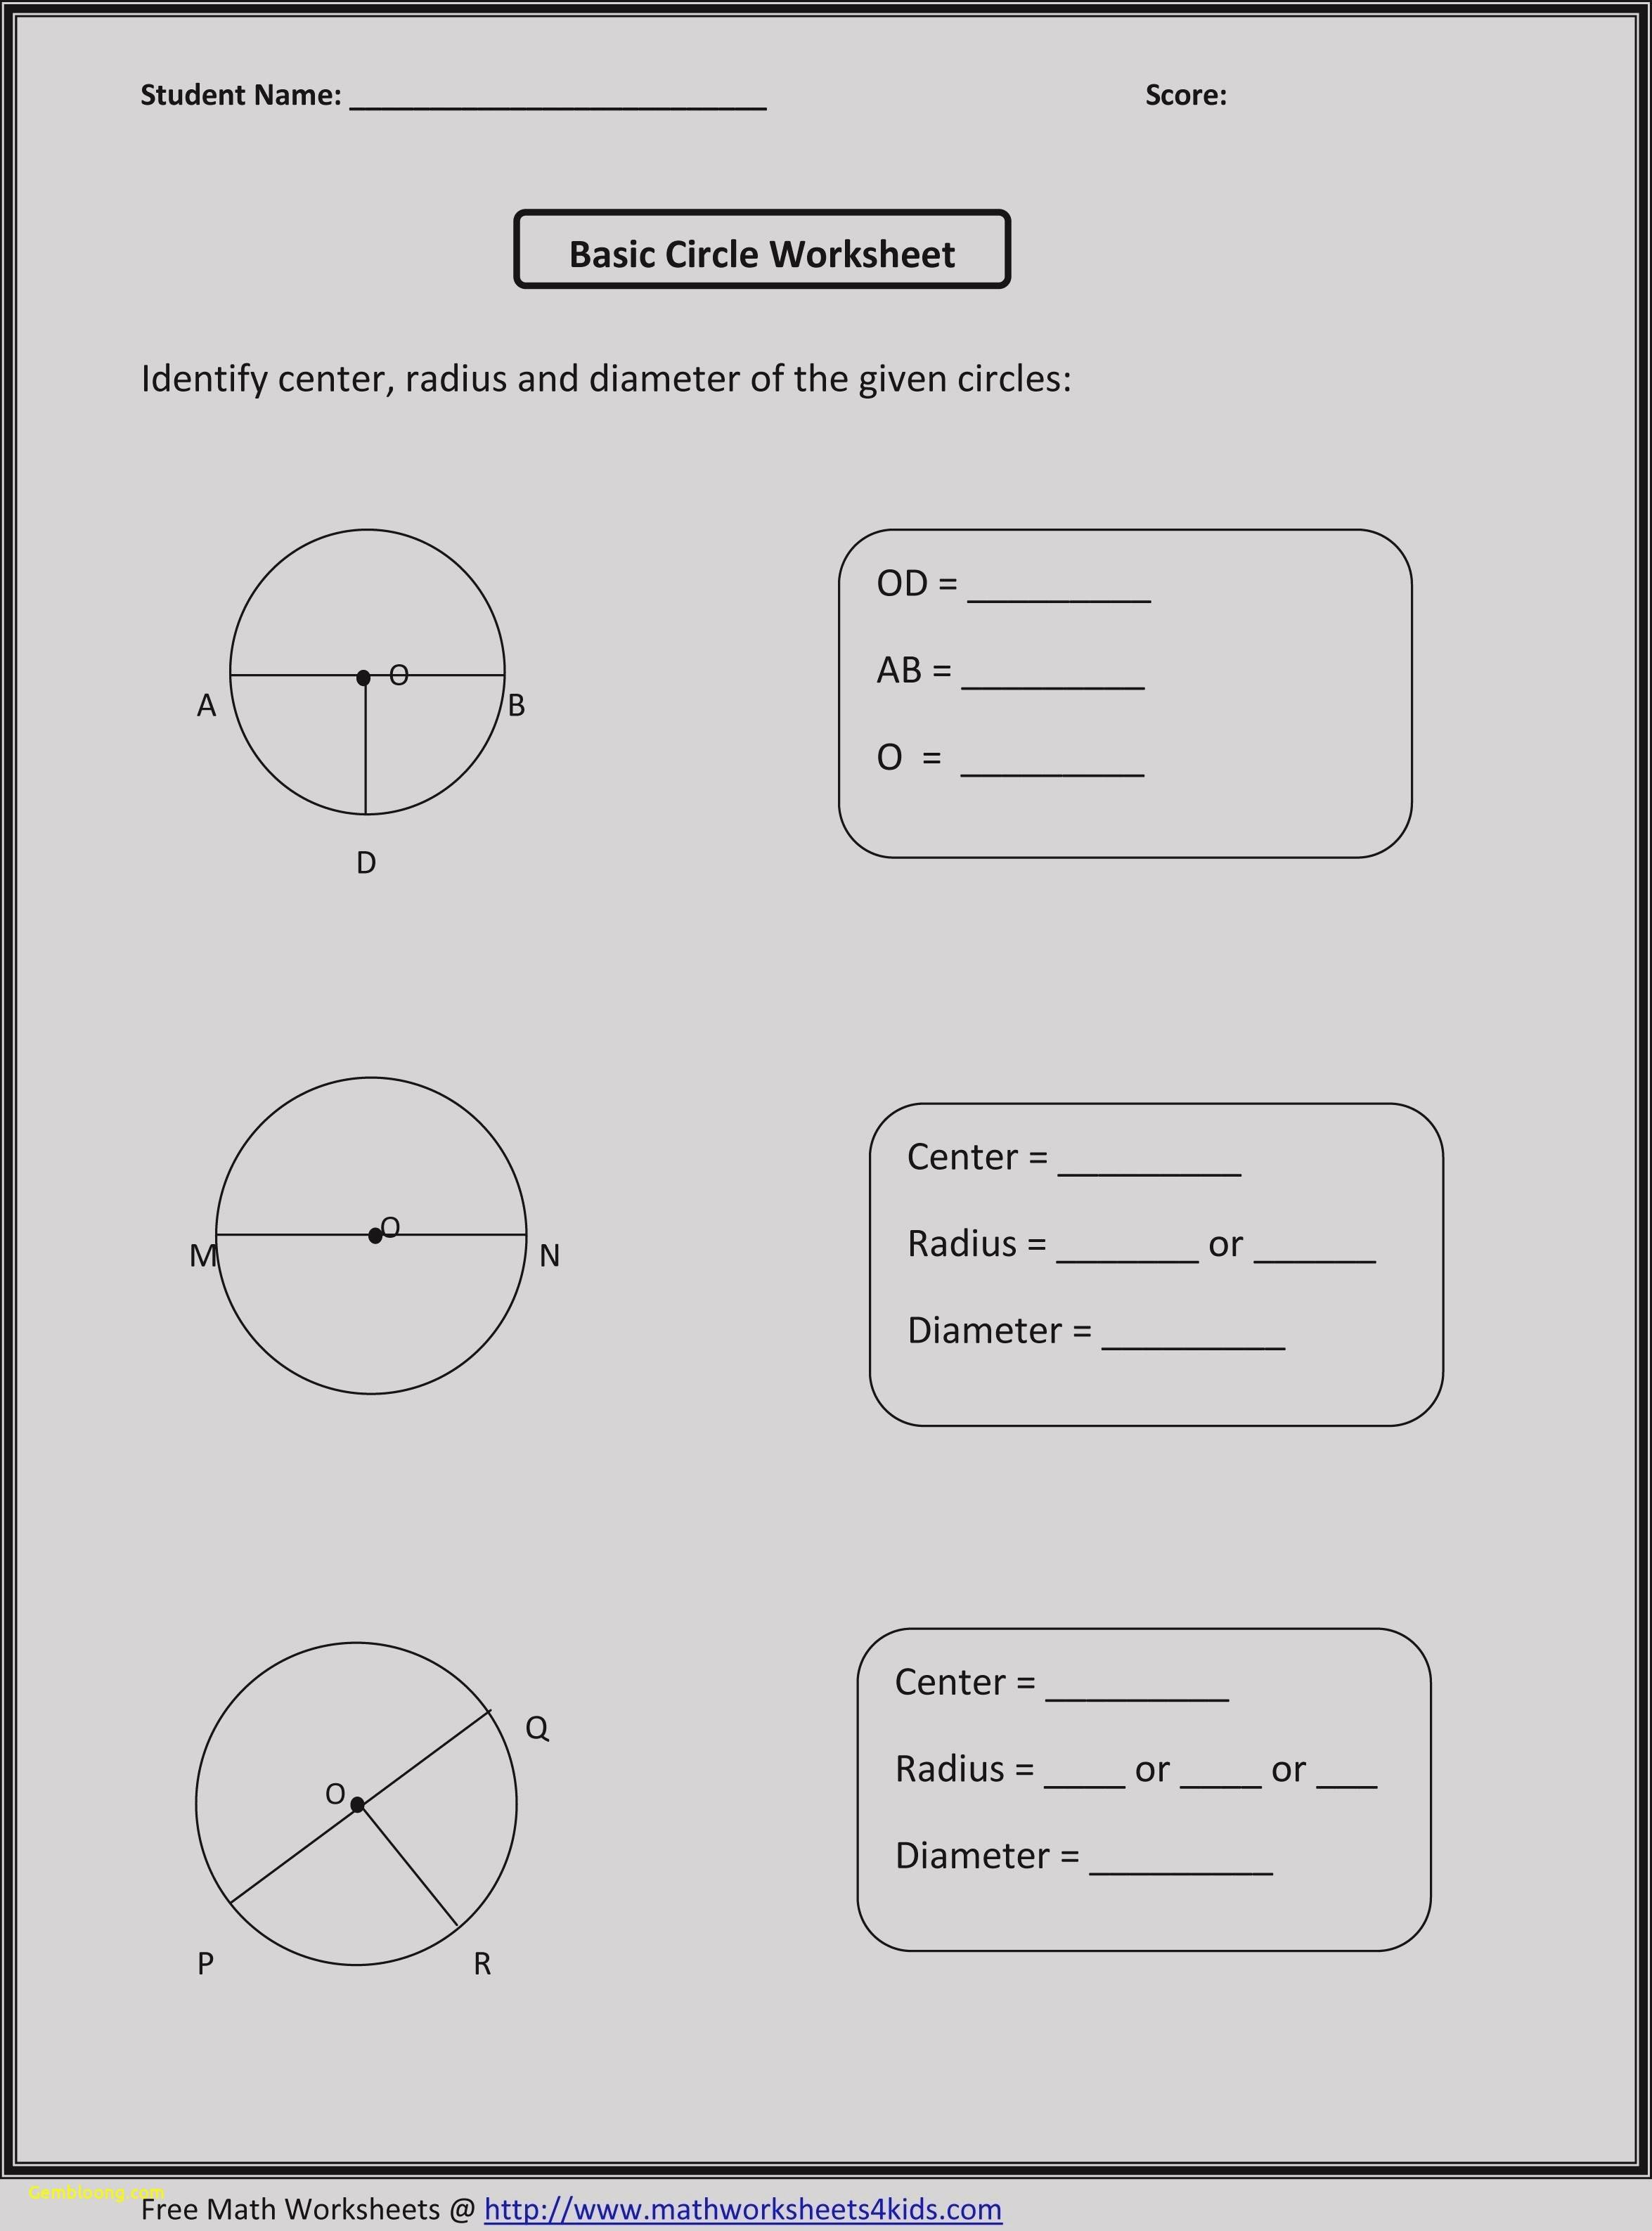 Bohr Model Worksheet Answers Best Of Bohr Model Practice Worksheet Answers Cramerforcongress